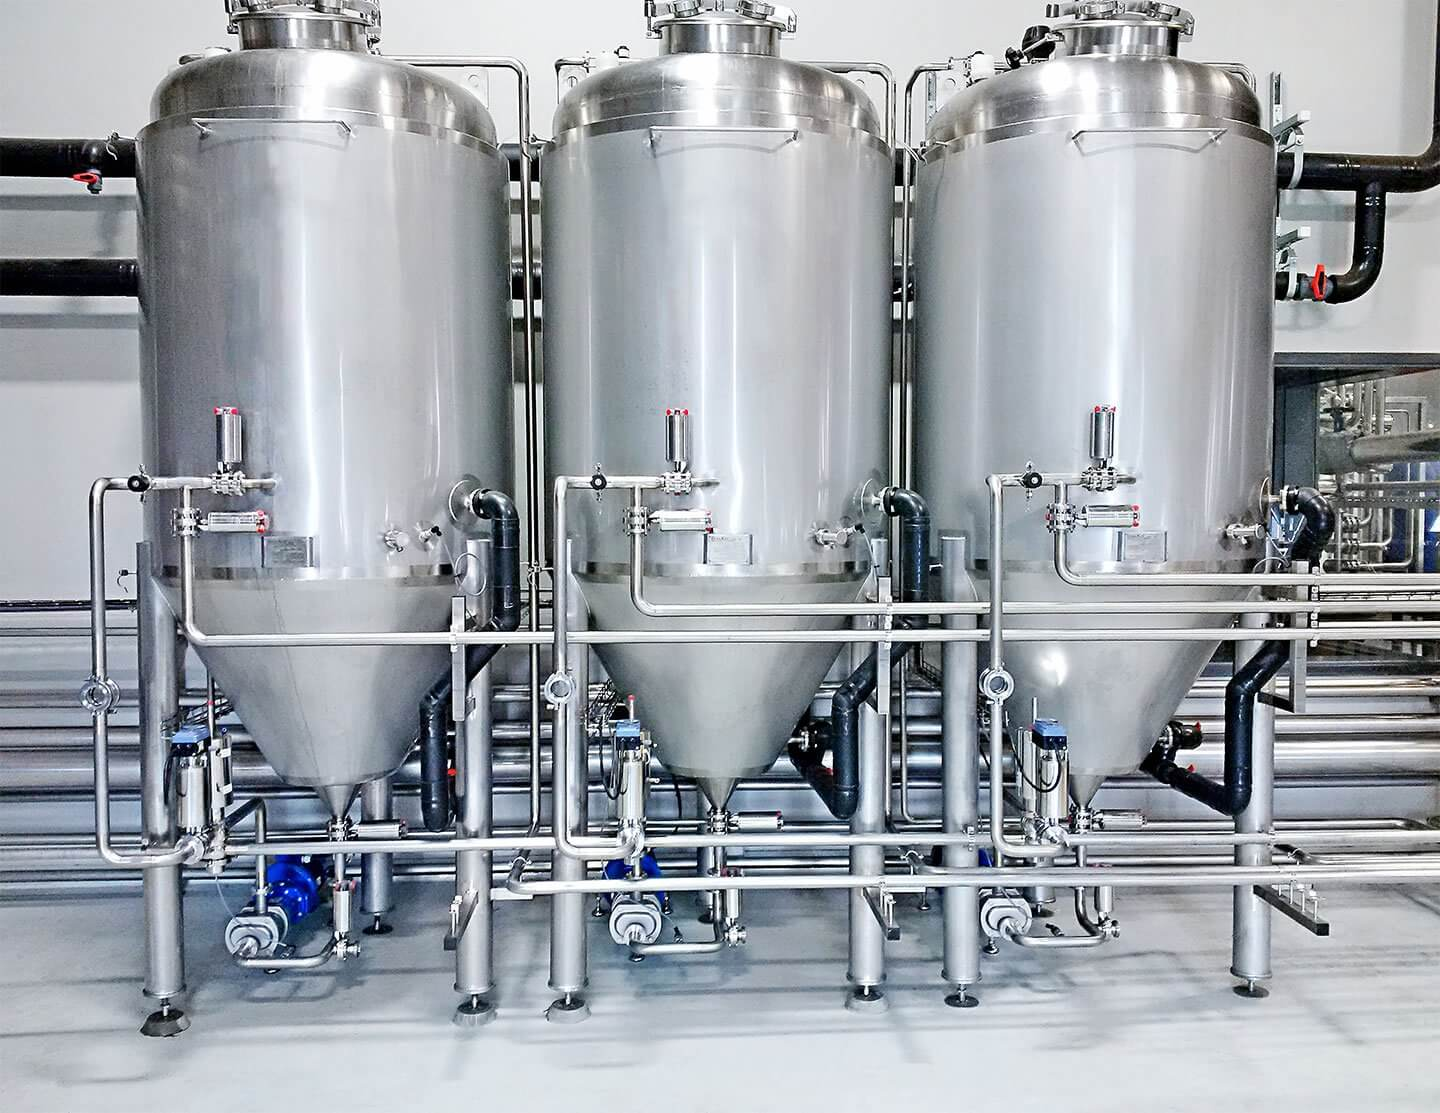 Yeast Propagation and Storage Tanks